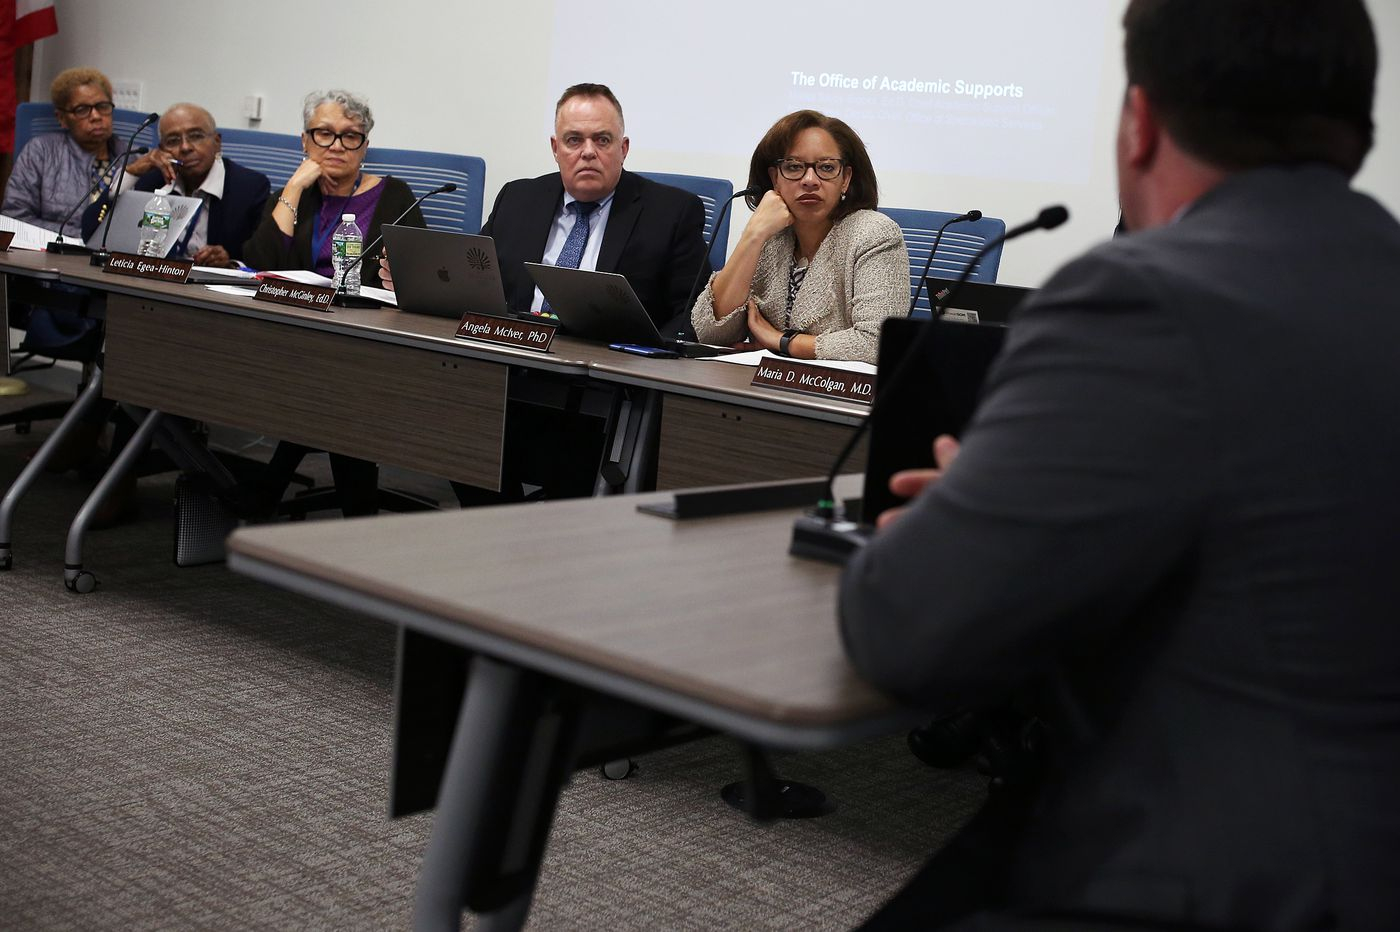 Philly Board of Education has done little to change status quo | Opinion